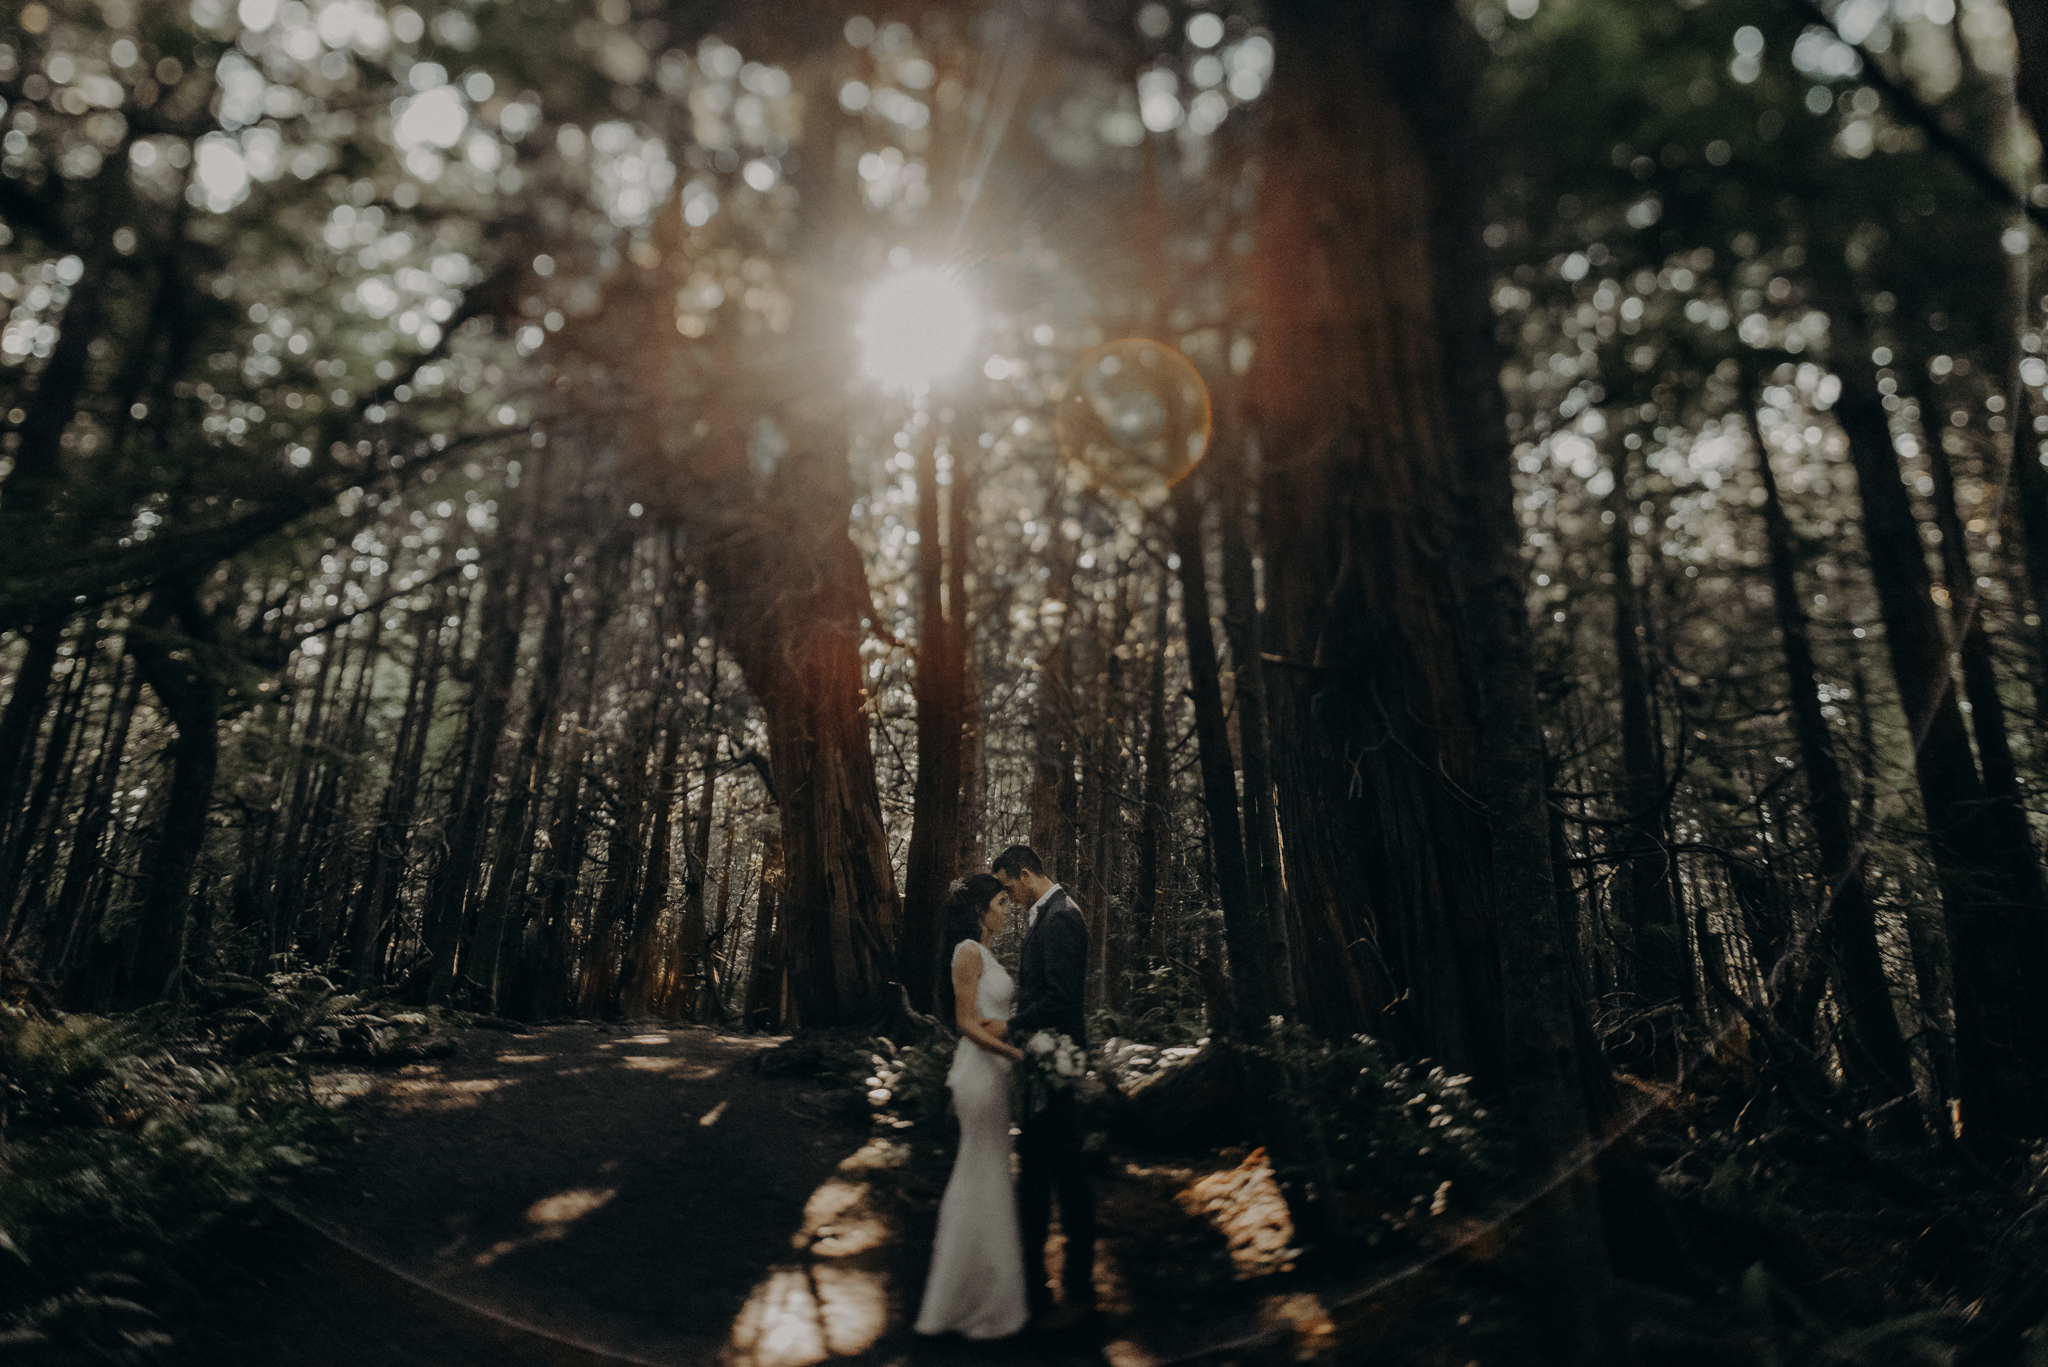 Isaiah + Taylor Photography - Cape Flattery Elopement, Olympia National Forest Wedding Photographer-023.jpg